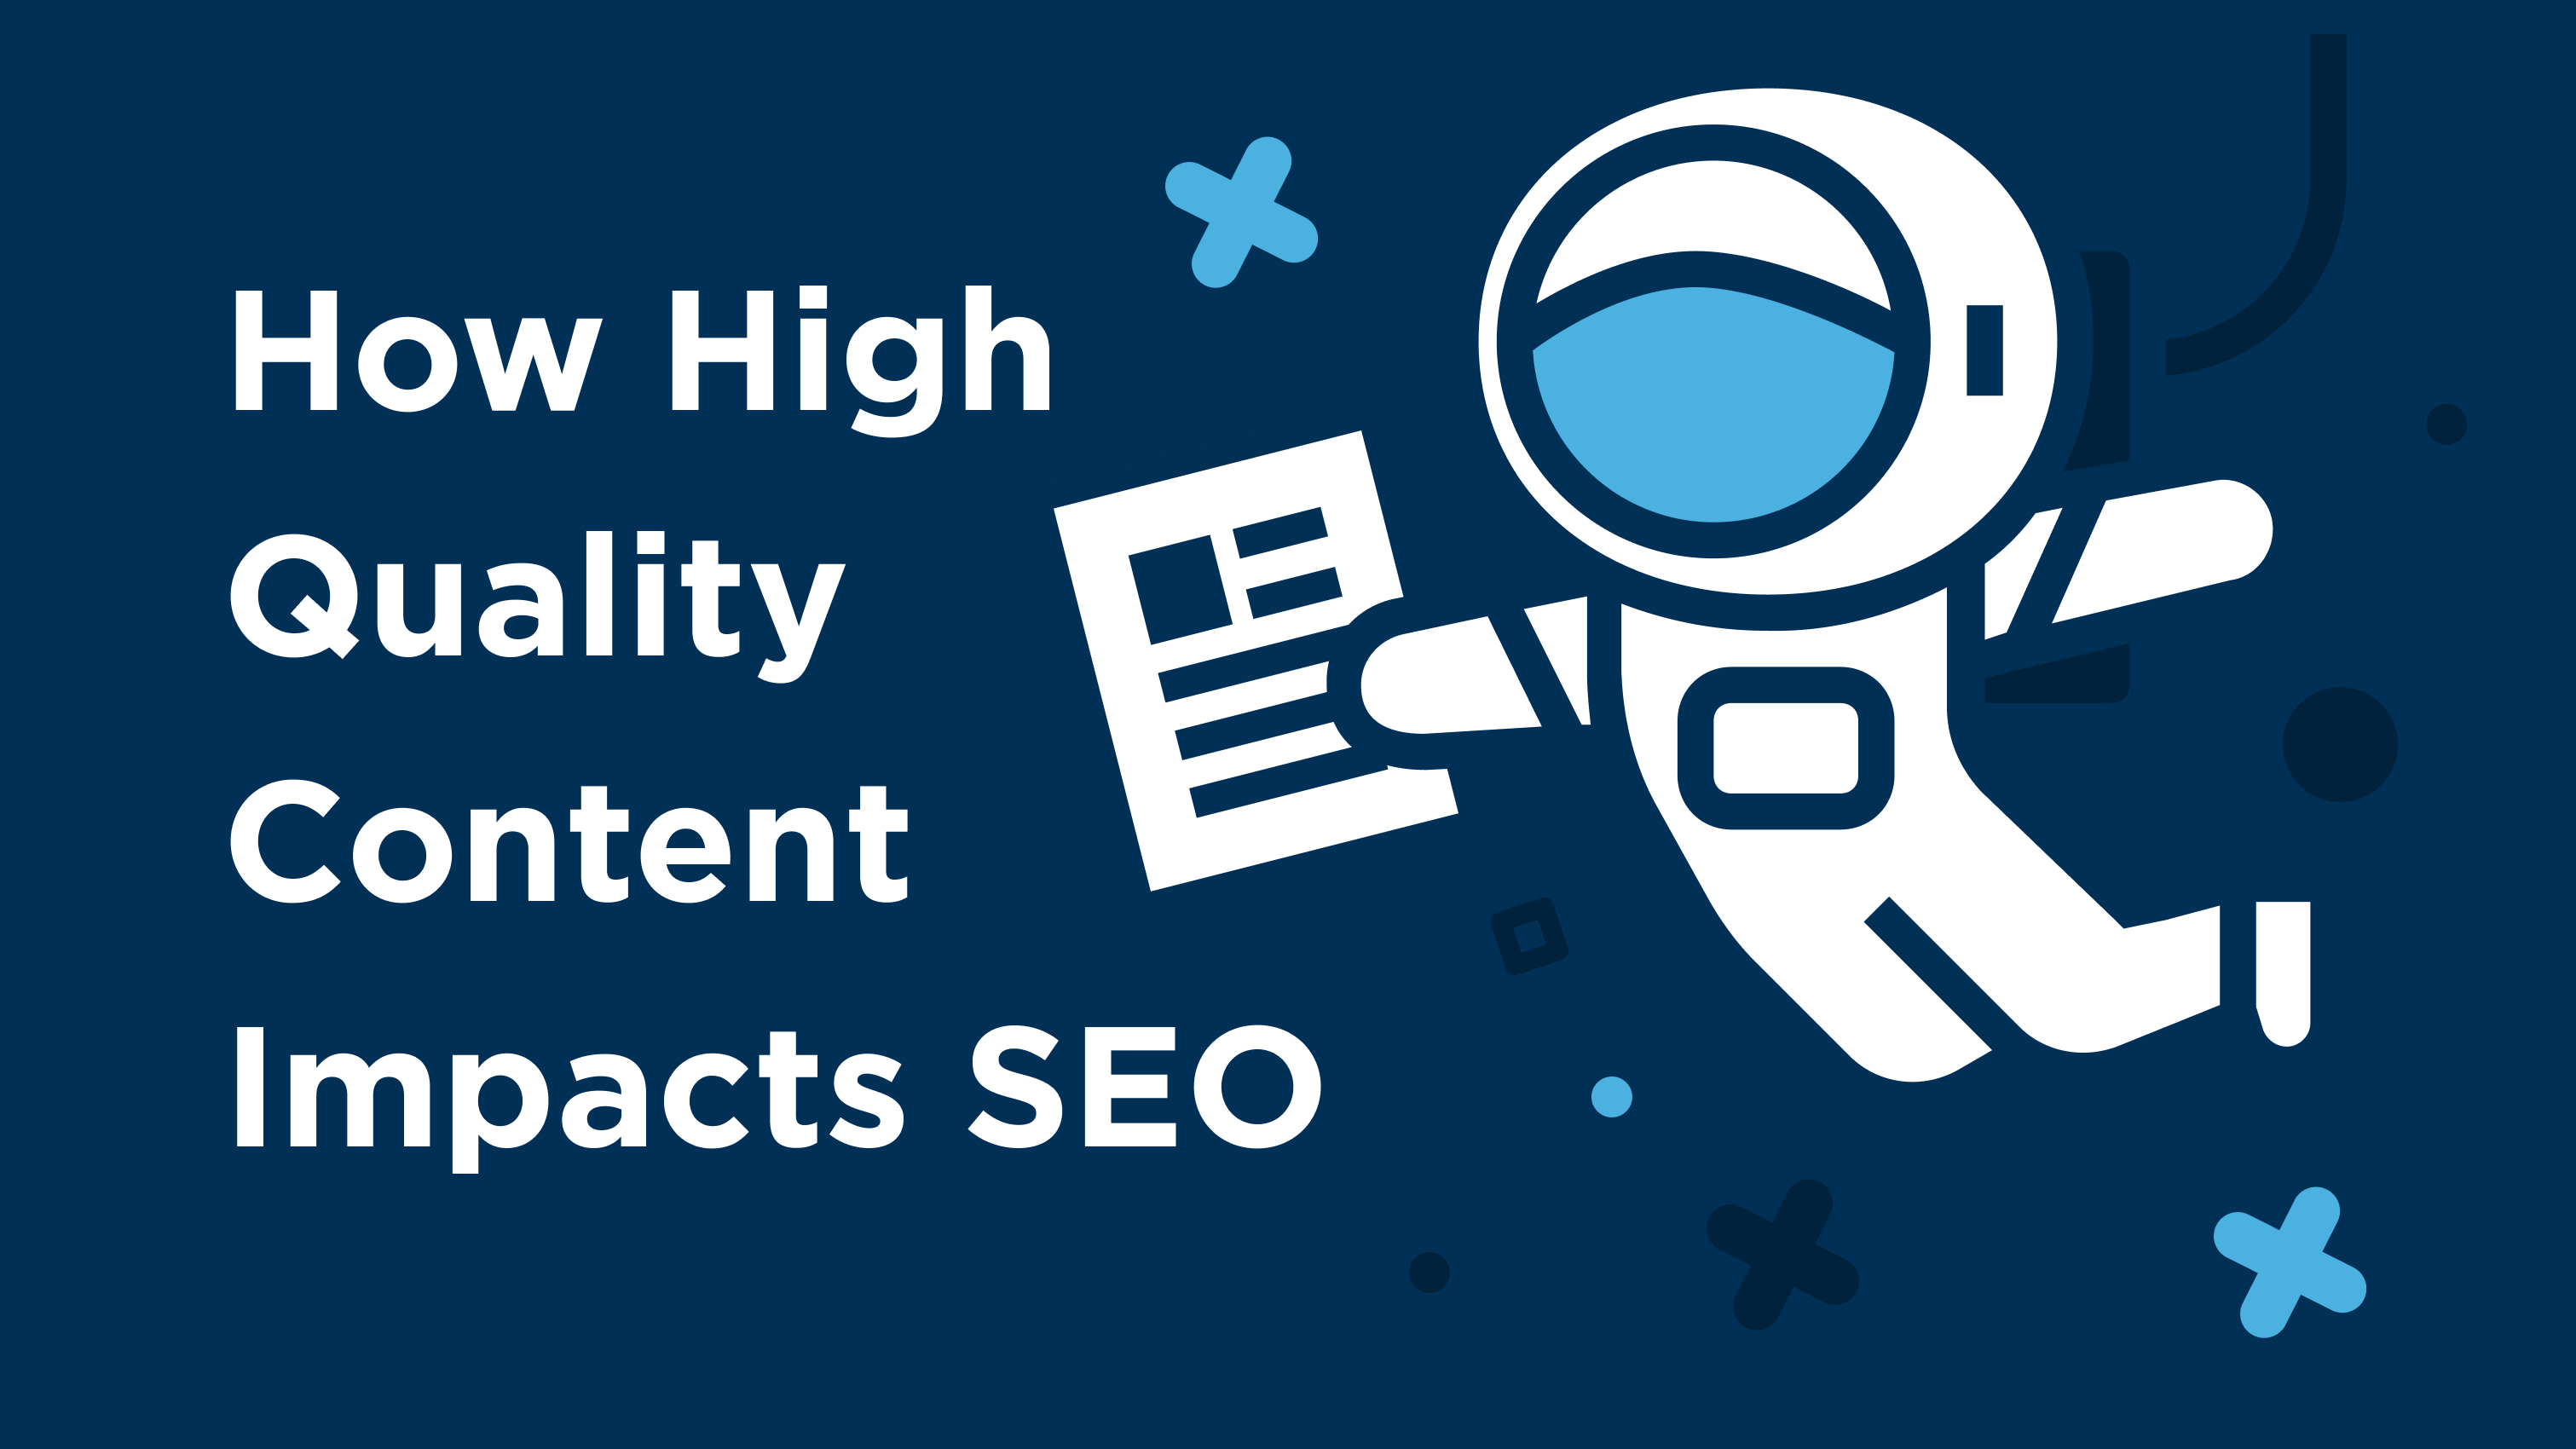 Content Impacts SEO